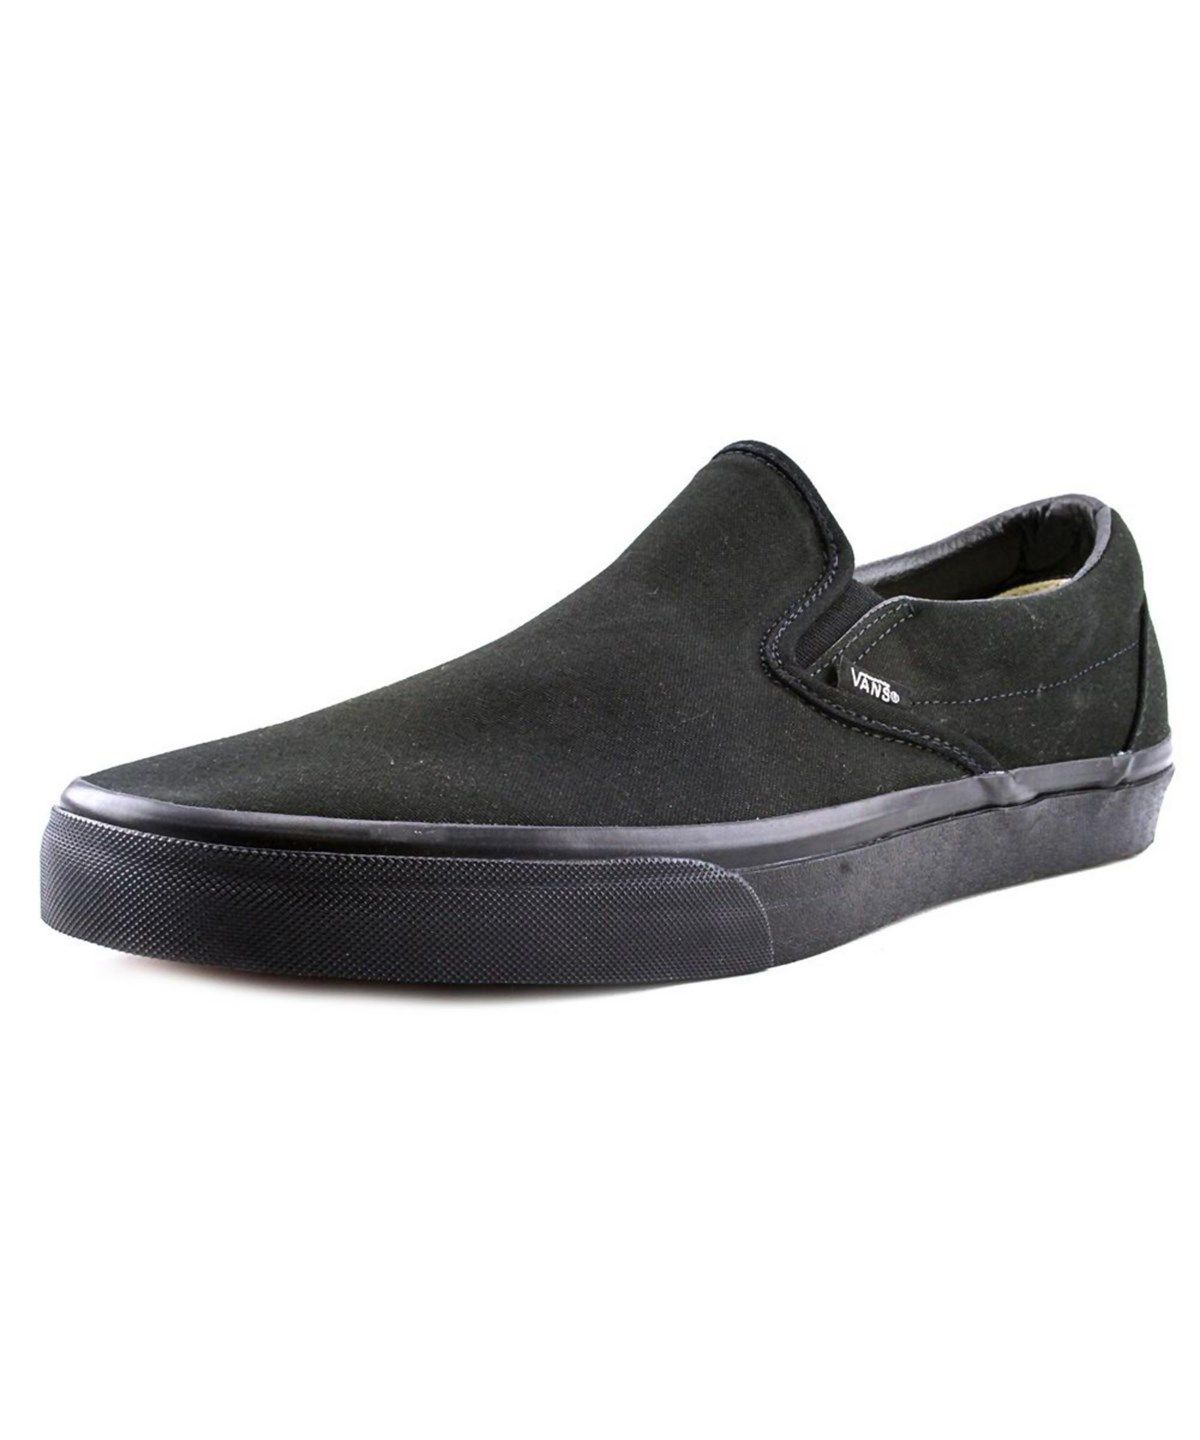 7e648c221aa72f VANS Vans Classic Slip-On Men Round Toe Canvas Black Loafer .  vans  shoes   loafers